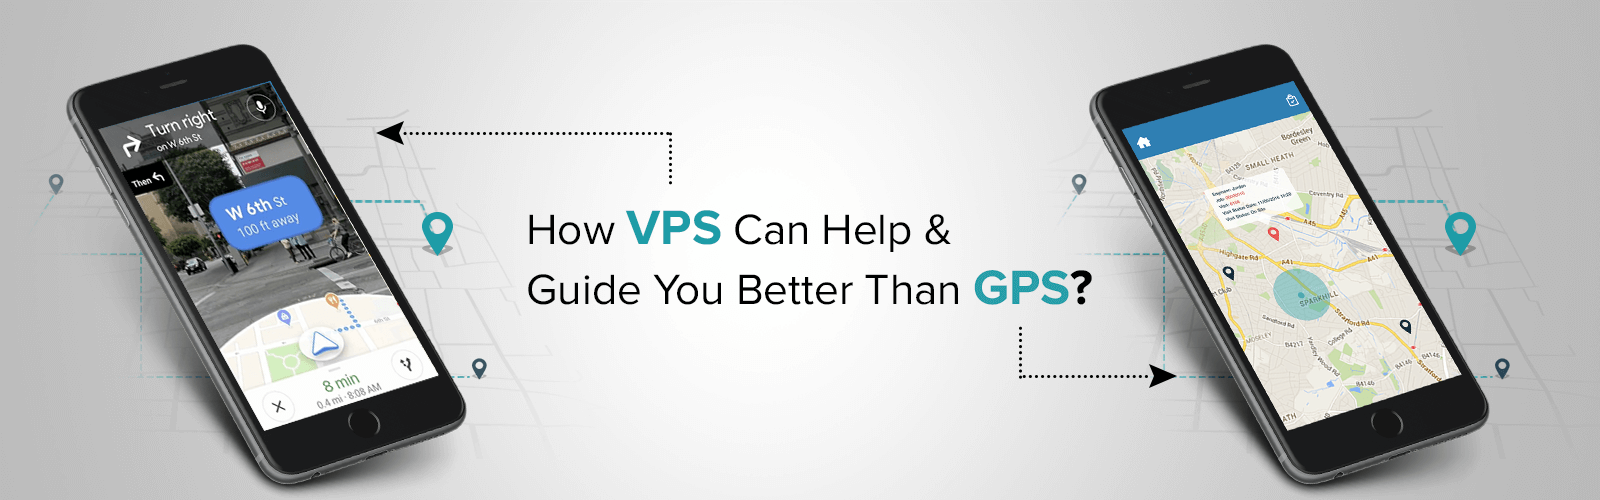 How VPS Can Help & Guide You Better Than GPS?